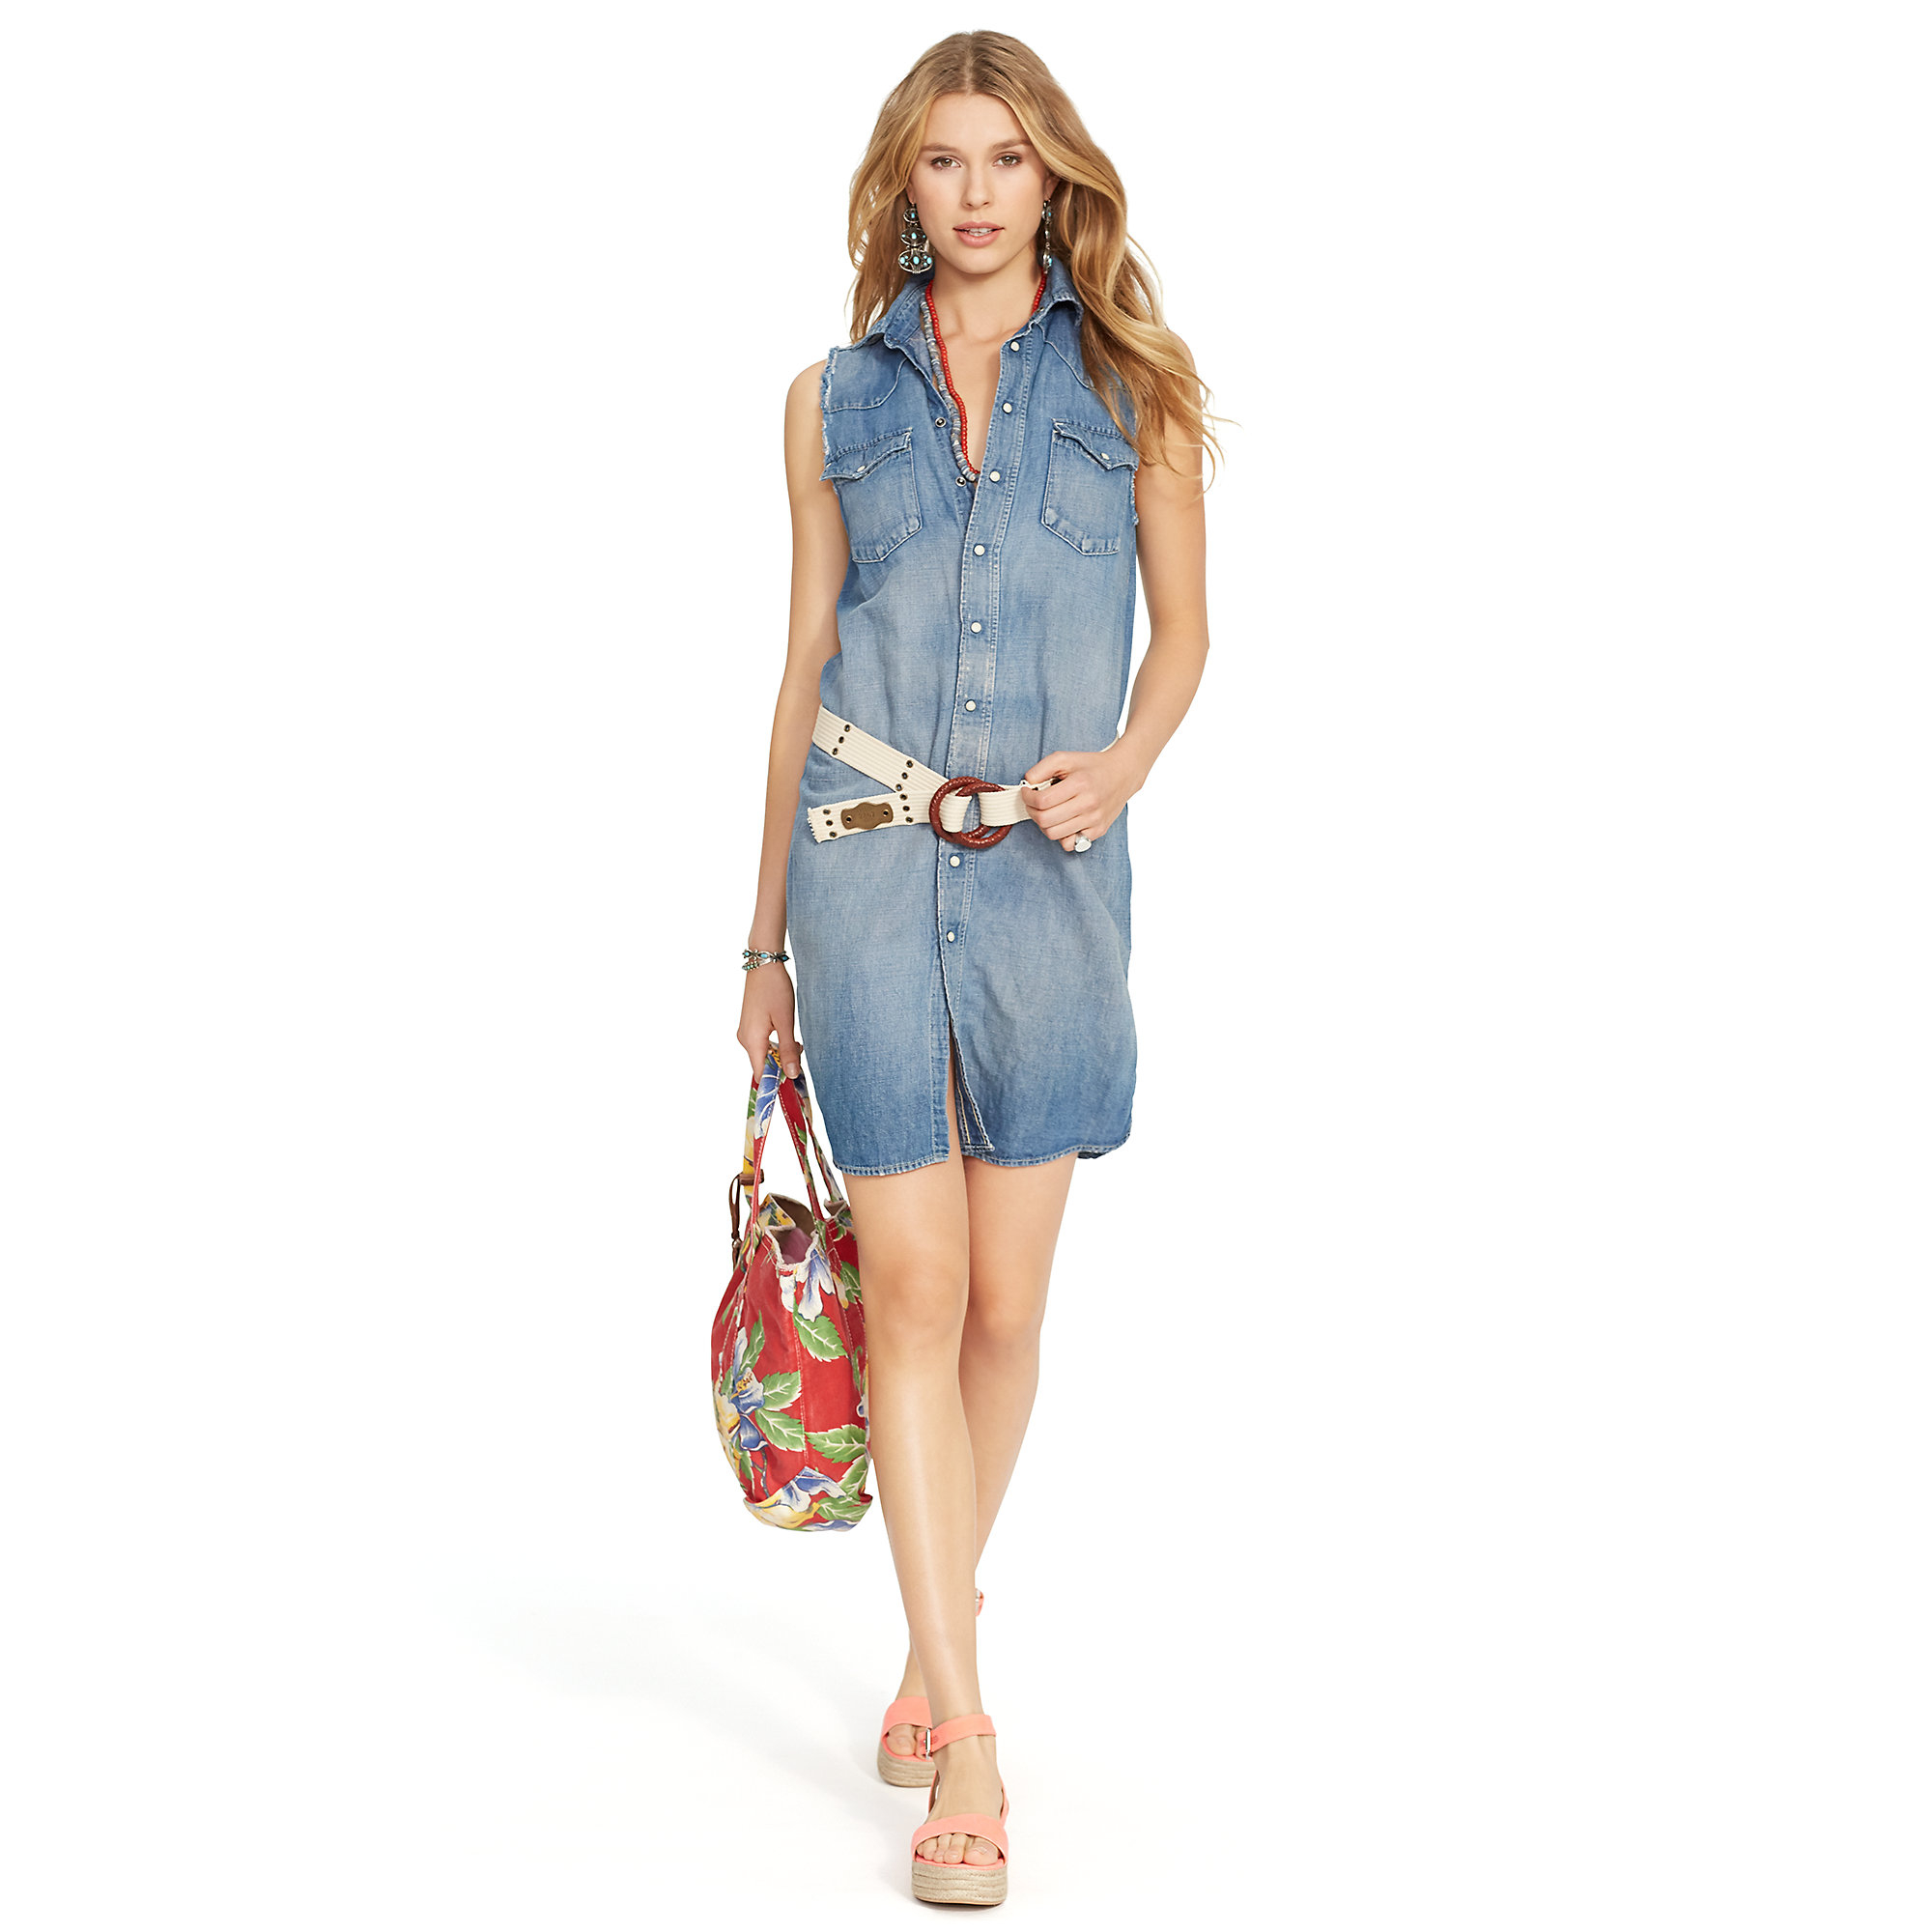 Lyst polo ralph lauren chambray sleeveless dress in blue for Chambray dress